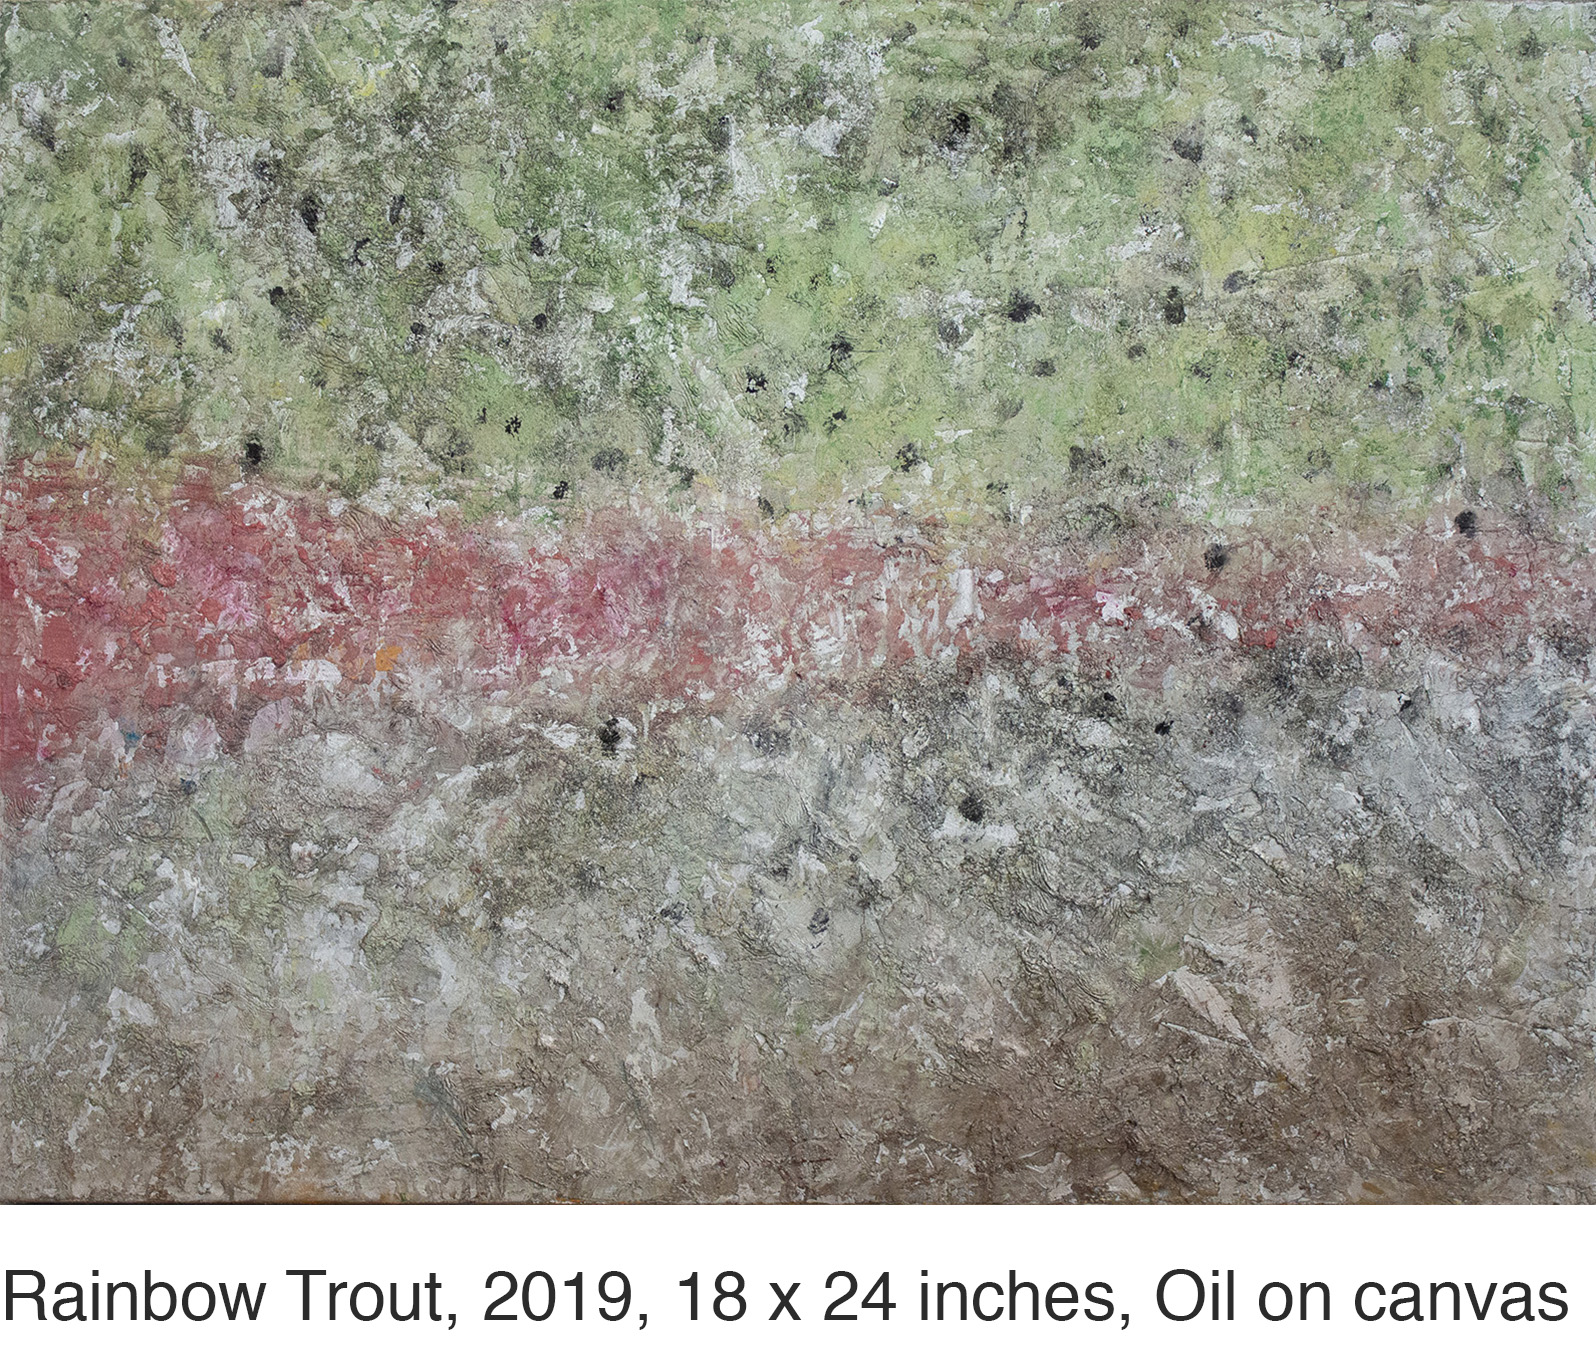 18x24_R_RainbowTrout_2019_Krutick_Oil web caption.jpg